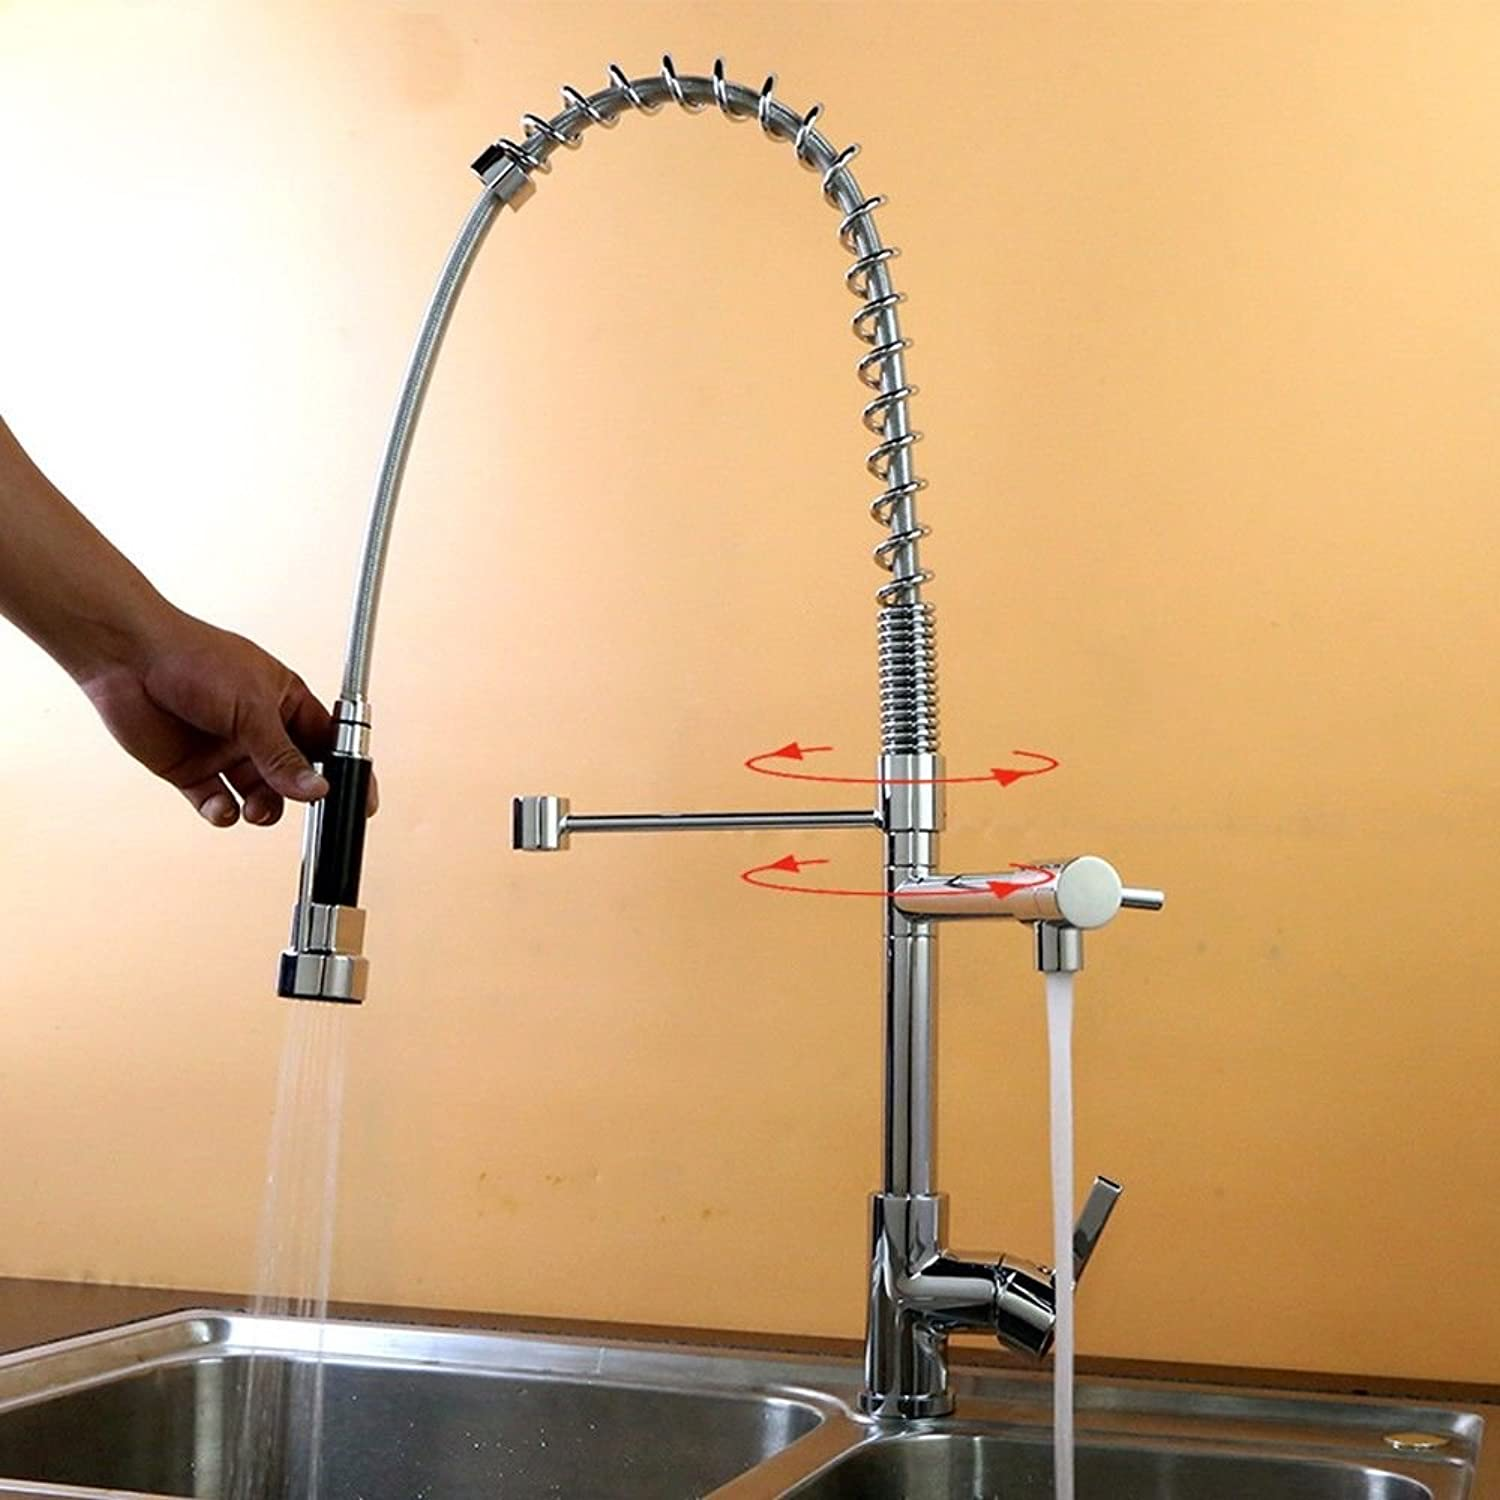 Lpophy Bathroom Sink Mixer Taps Faucet Bath Waterfall Cold and Hot Water Tap for Washroom Bathroom and Kitchen Copper Hot and Cold redating Tension Spring